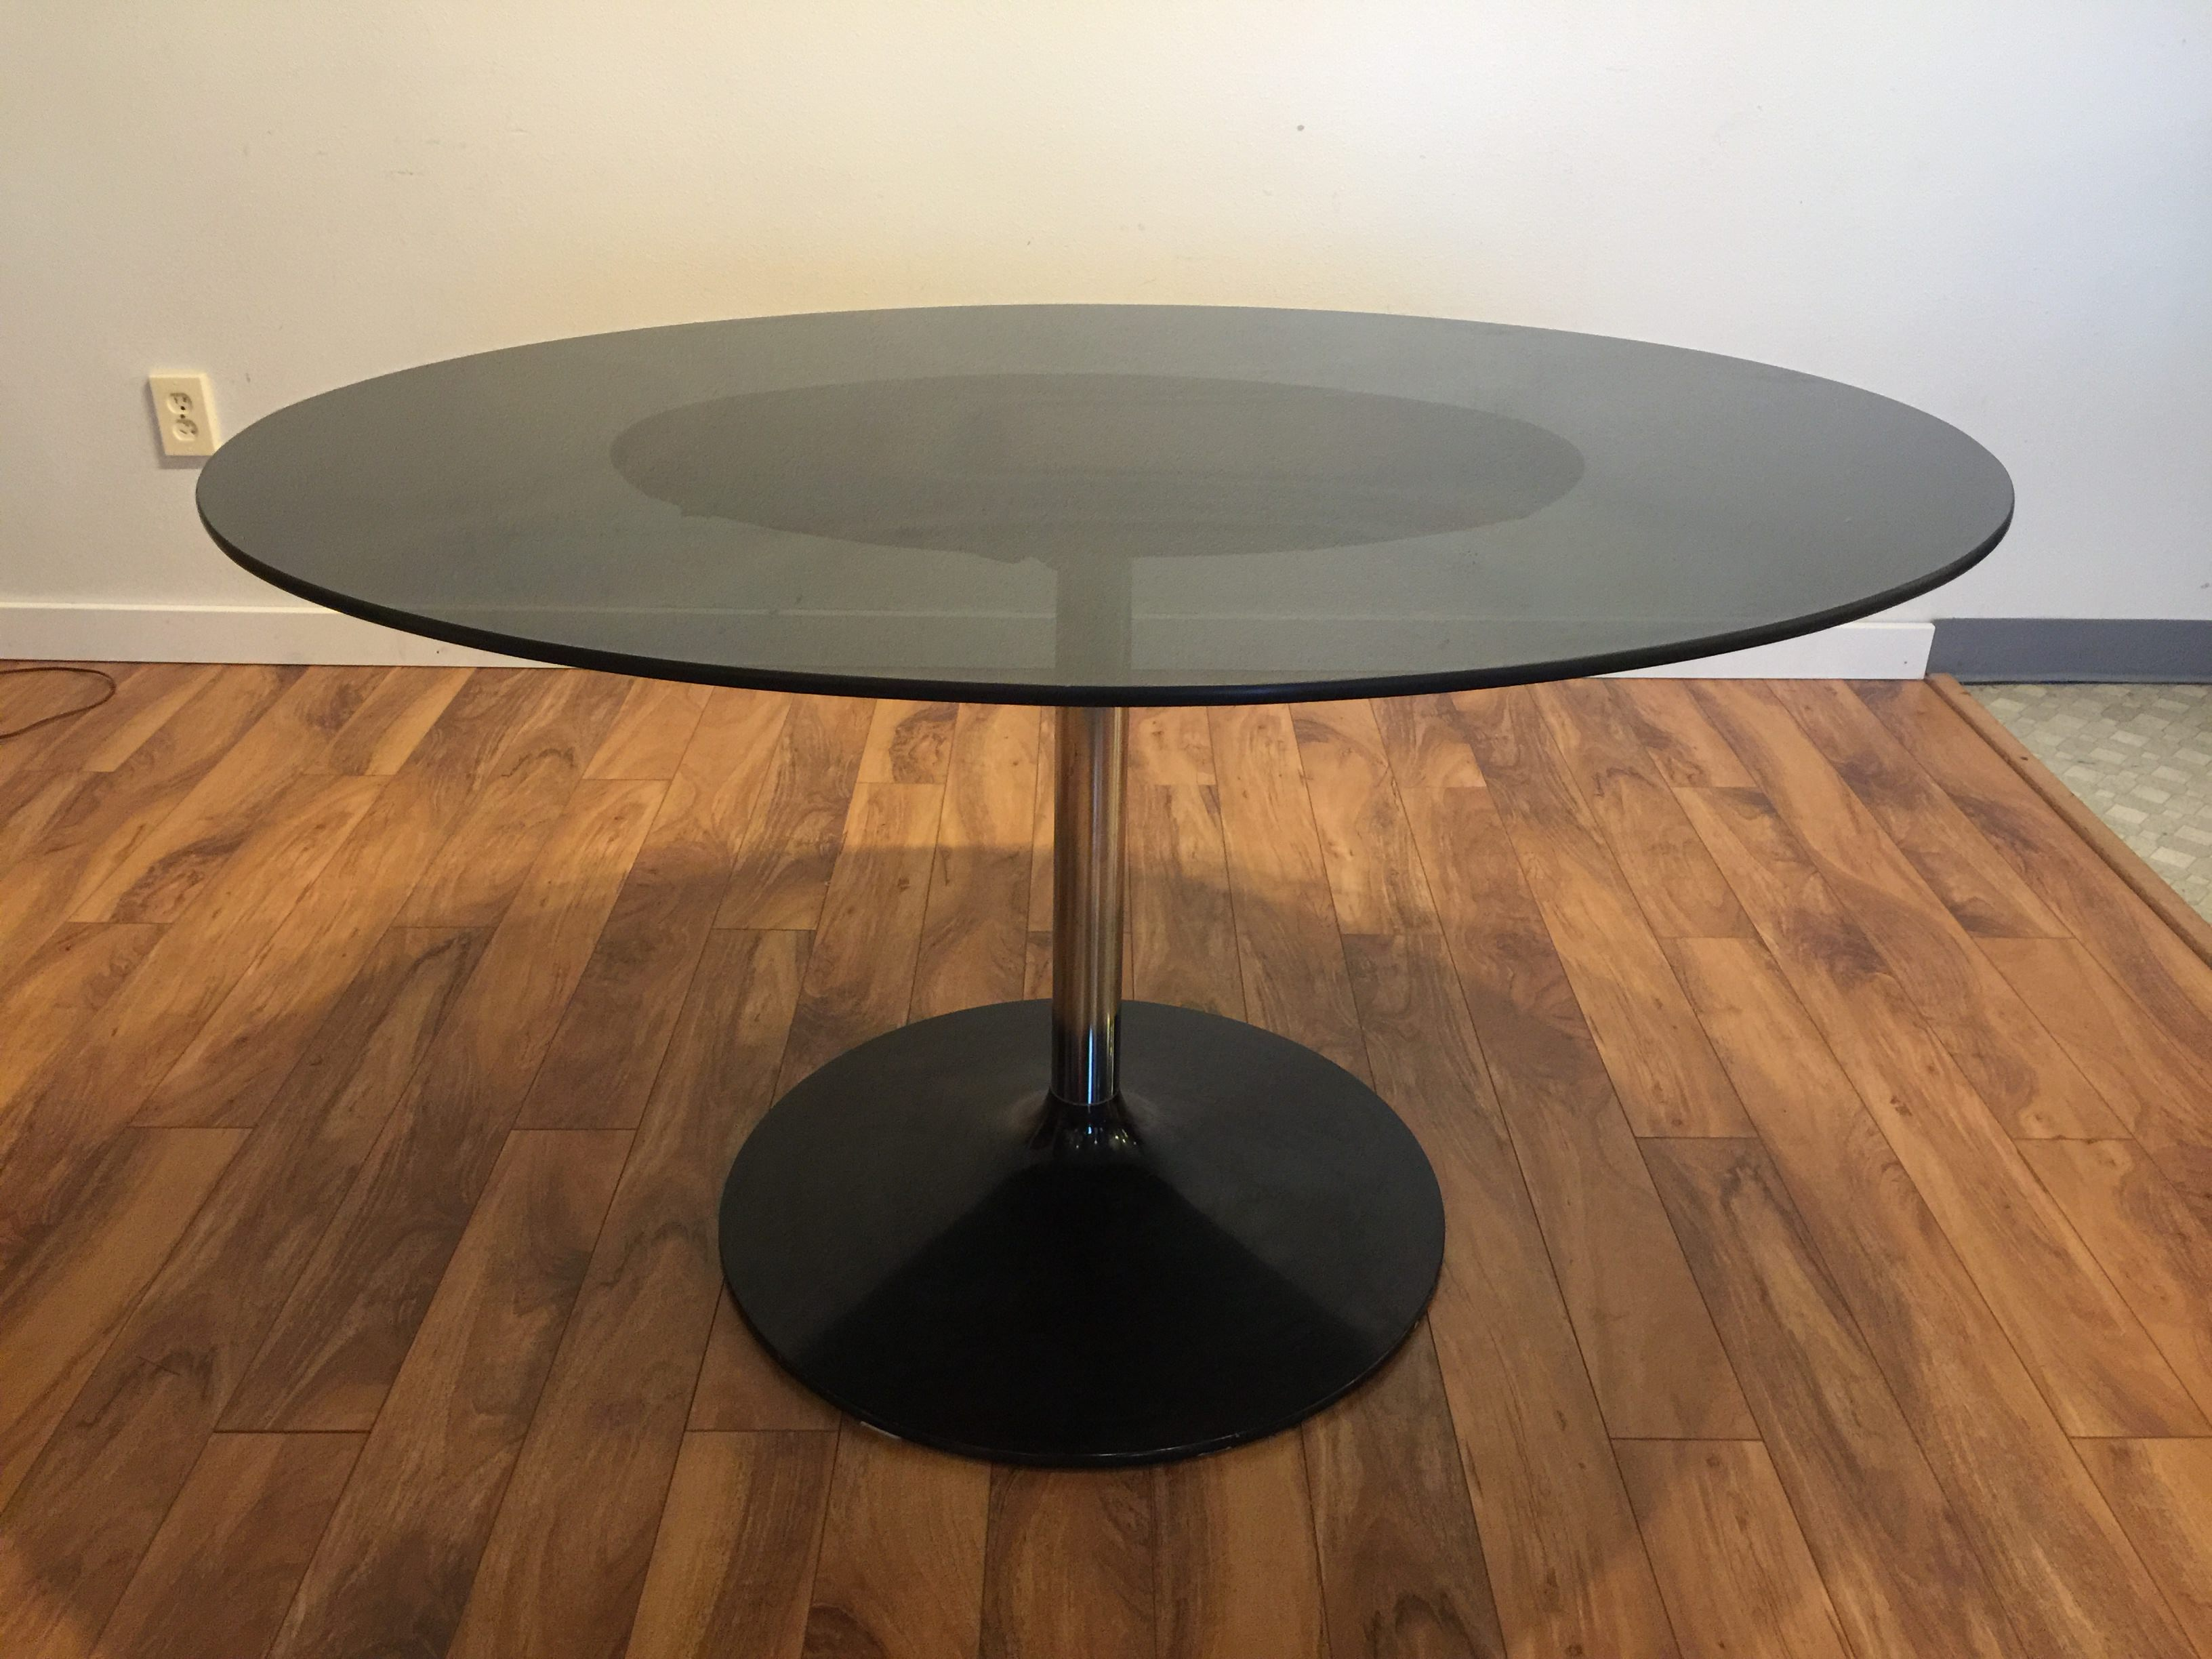 Sold Vintage Smoked Glass Oval Dining Table Modern To